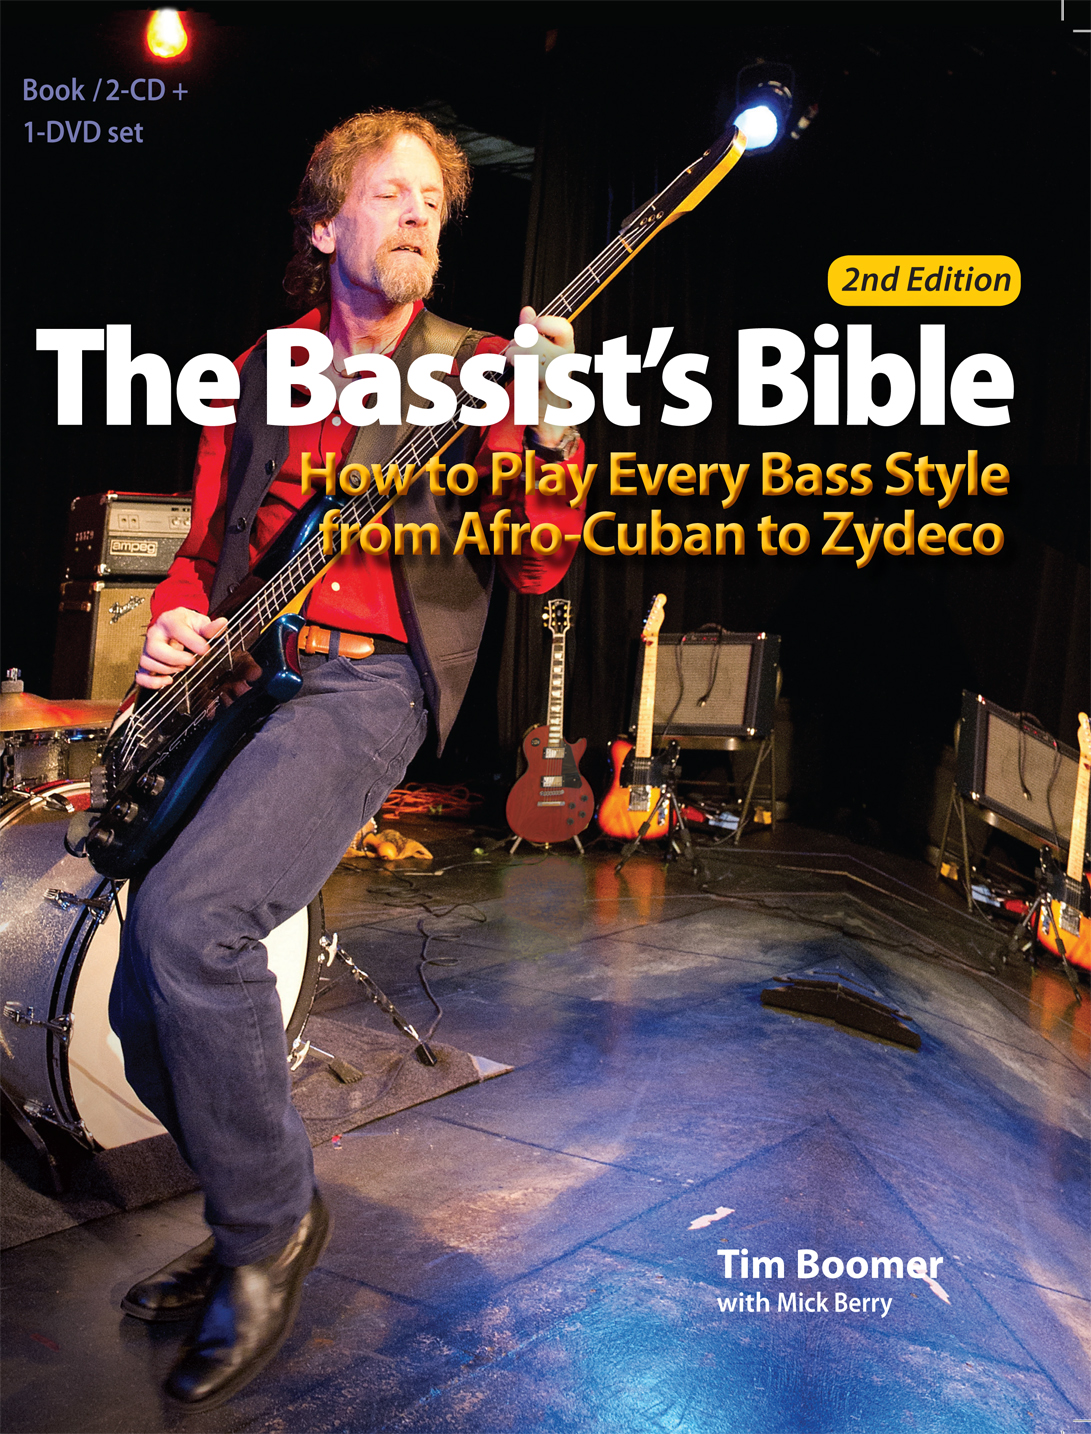 Bassists Bible 2nd Edition Cover